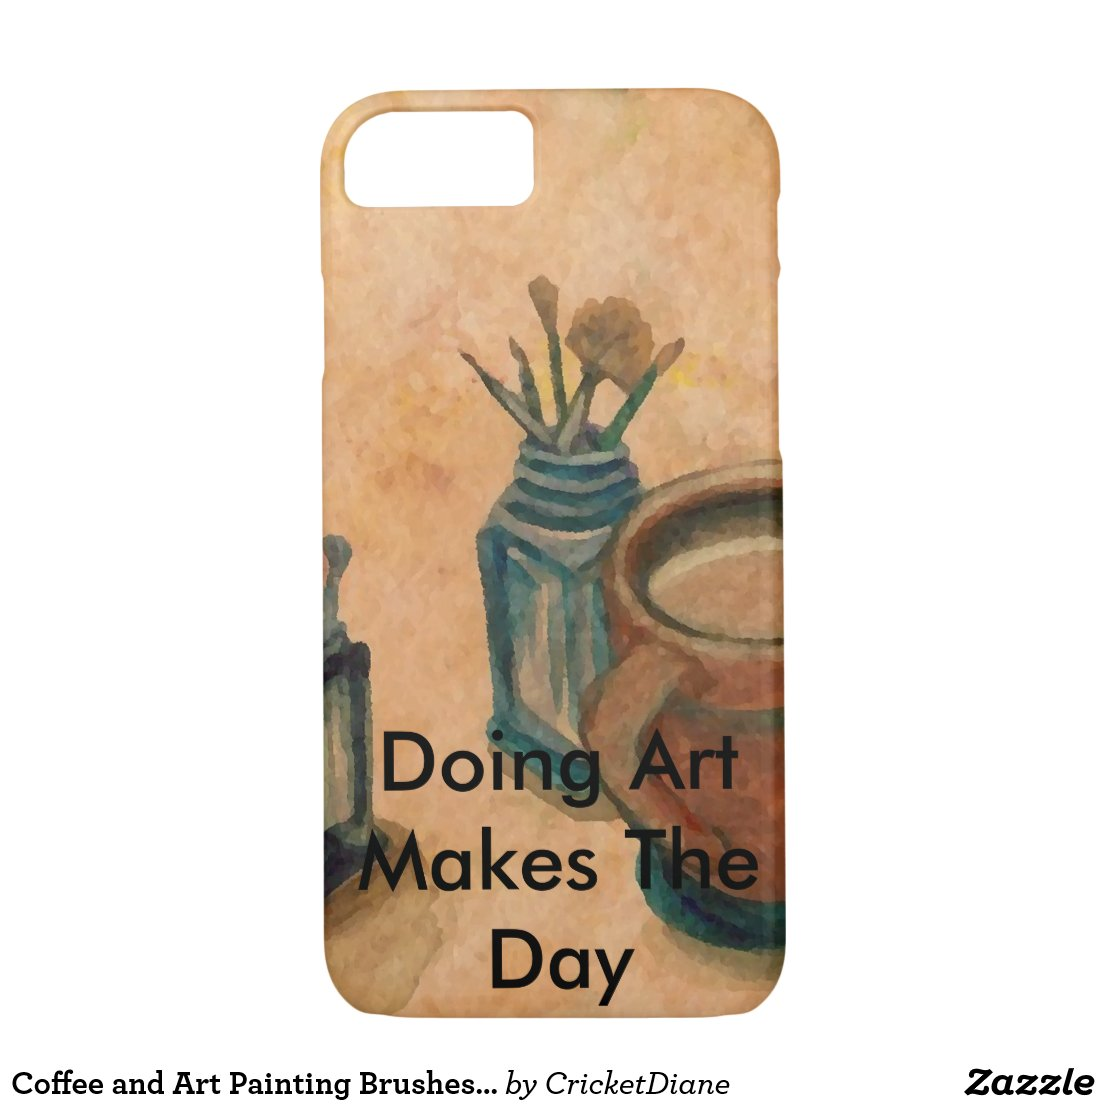 Coffee and Art Painting Brushes Artists Gifts